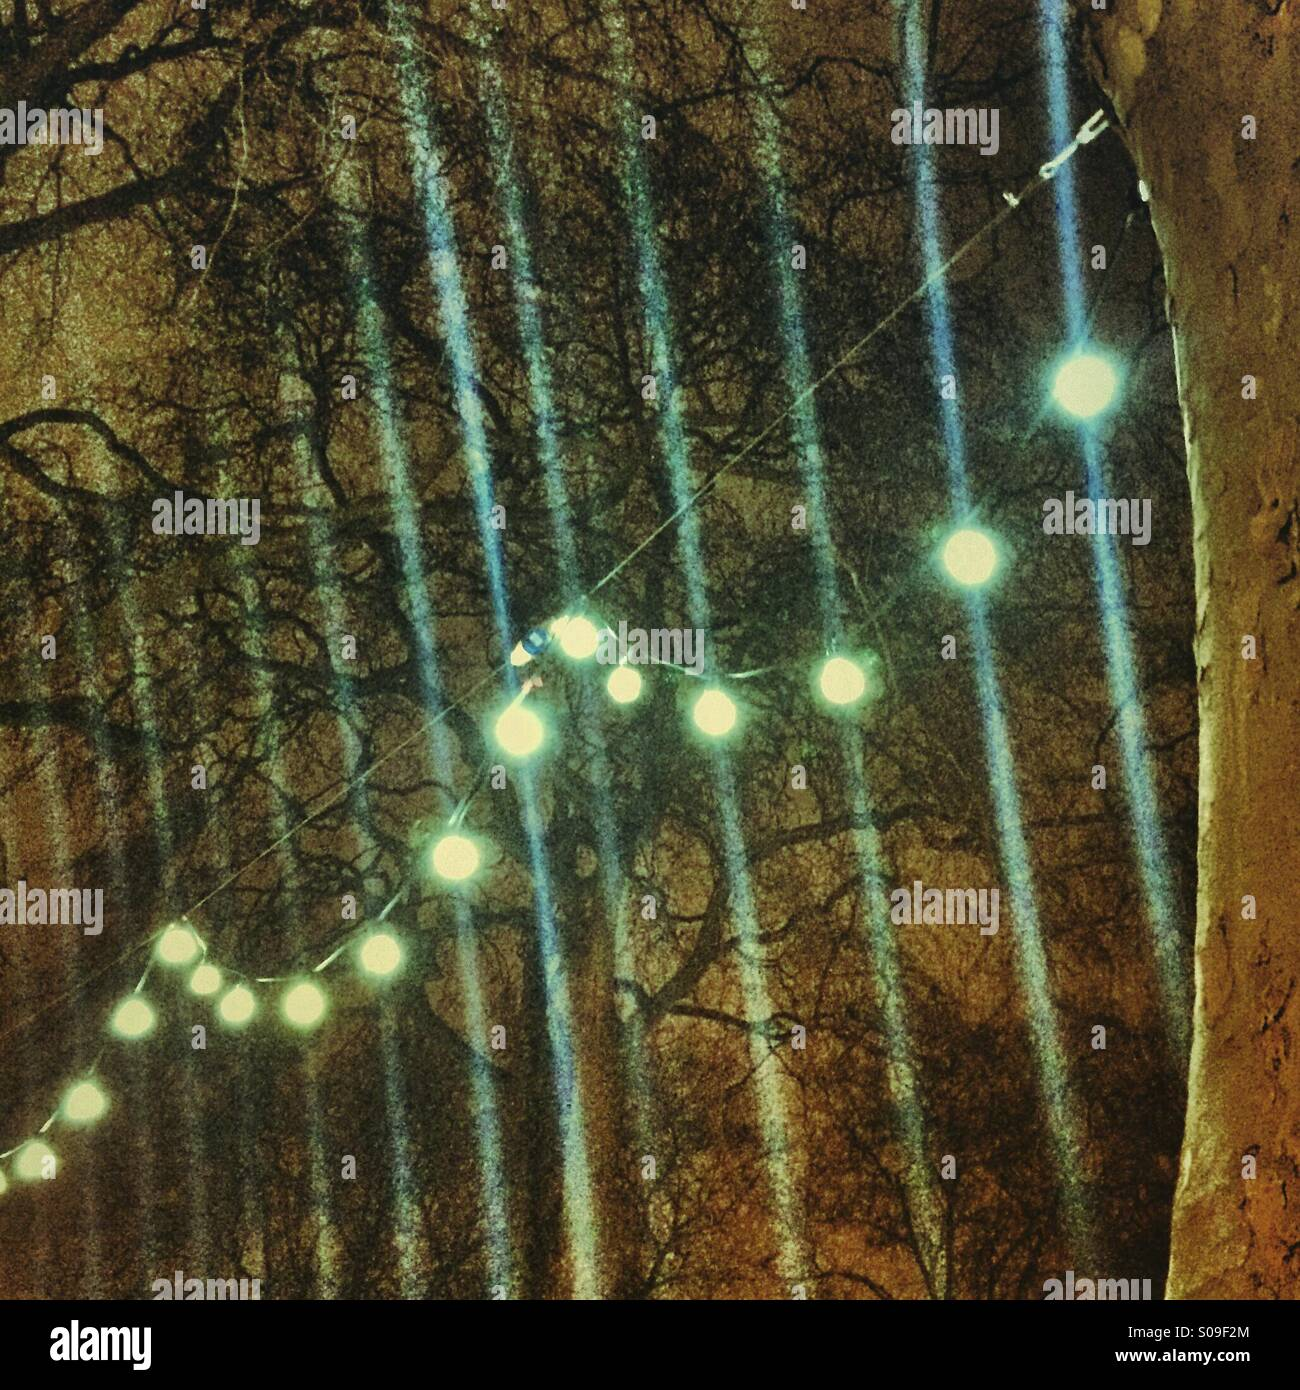 Les lumières de Noël brillants dans Hoxton Square, Londres Photo Stock